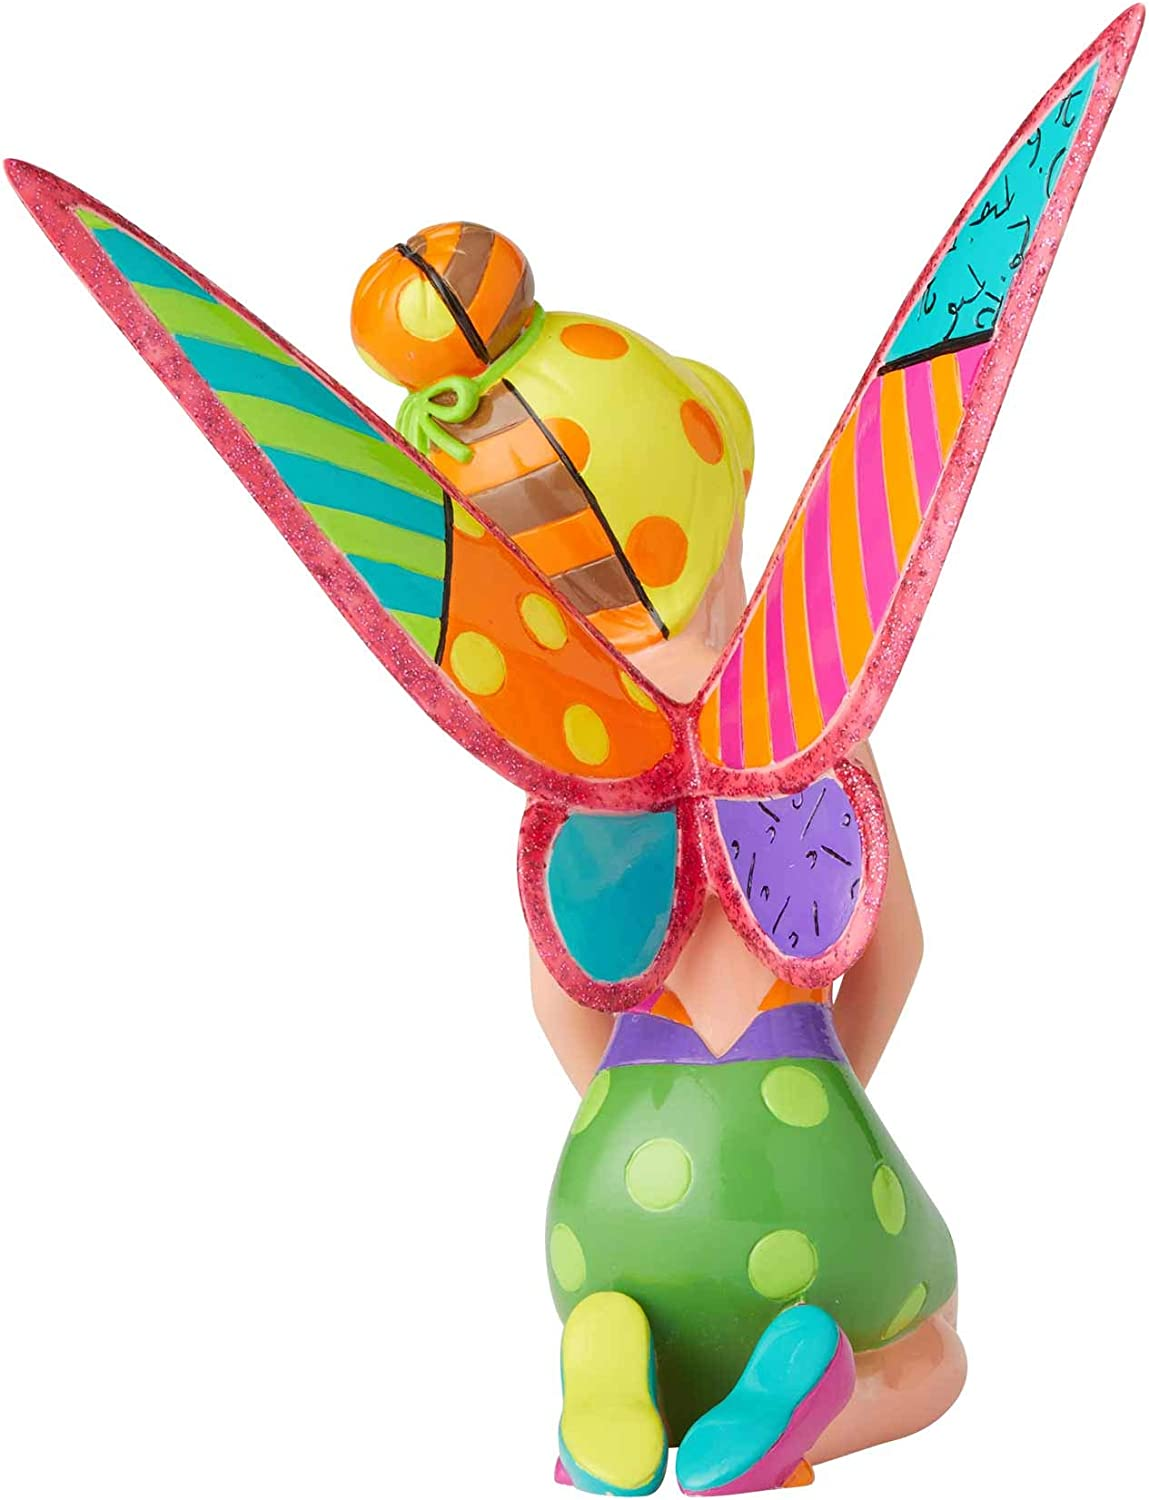 6 Inch Enesco Disney by Britto Peter Pan Tinker Bell Figurine Multicolor,6003344